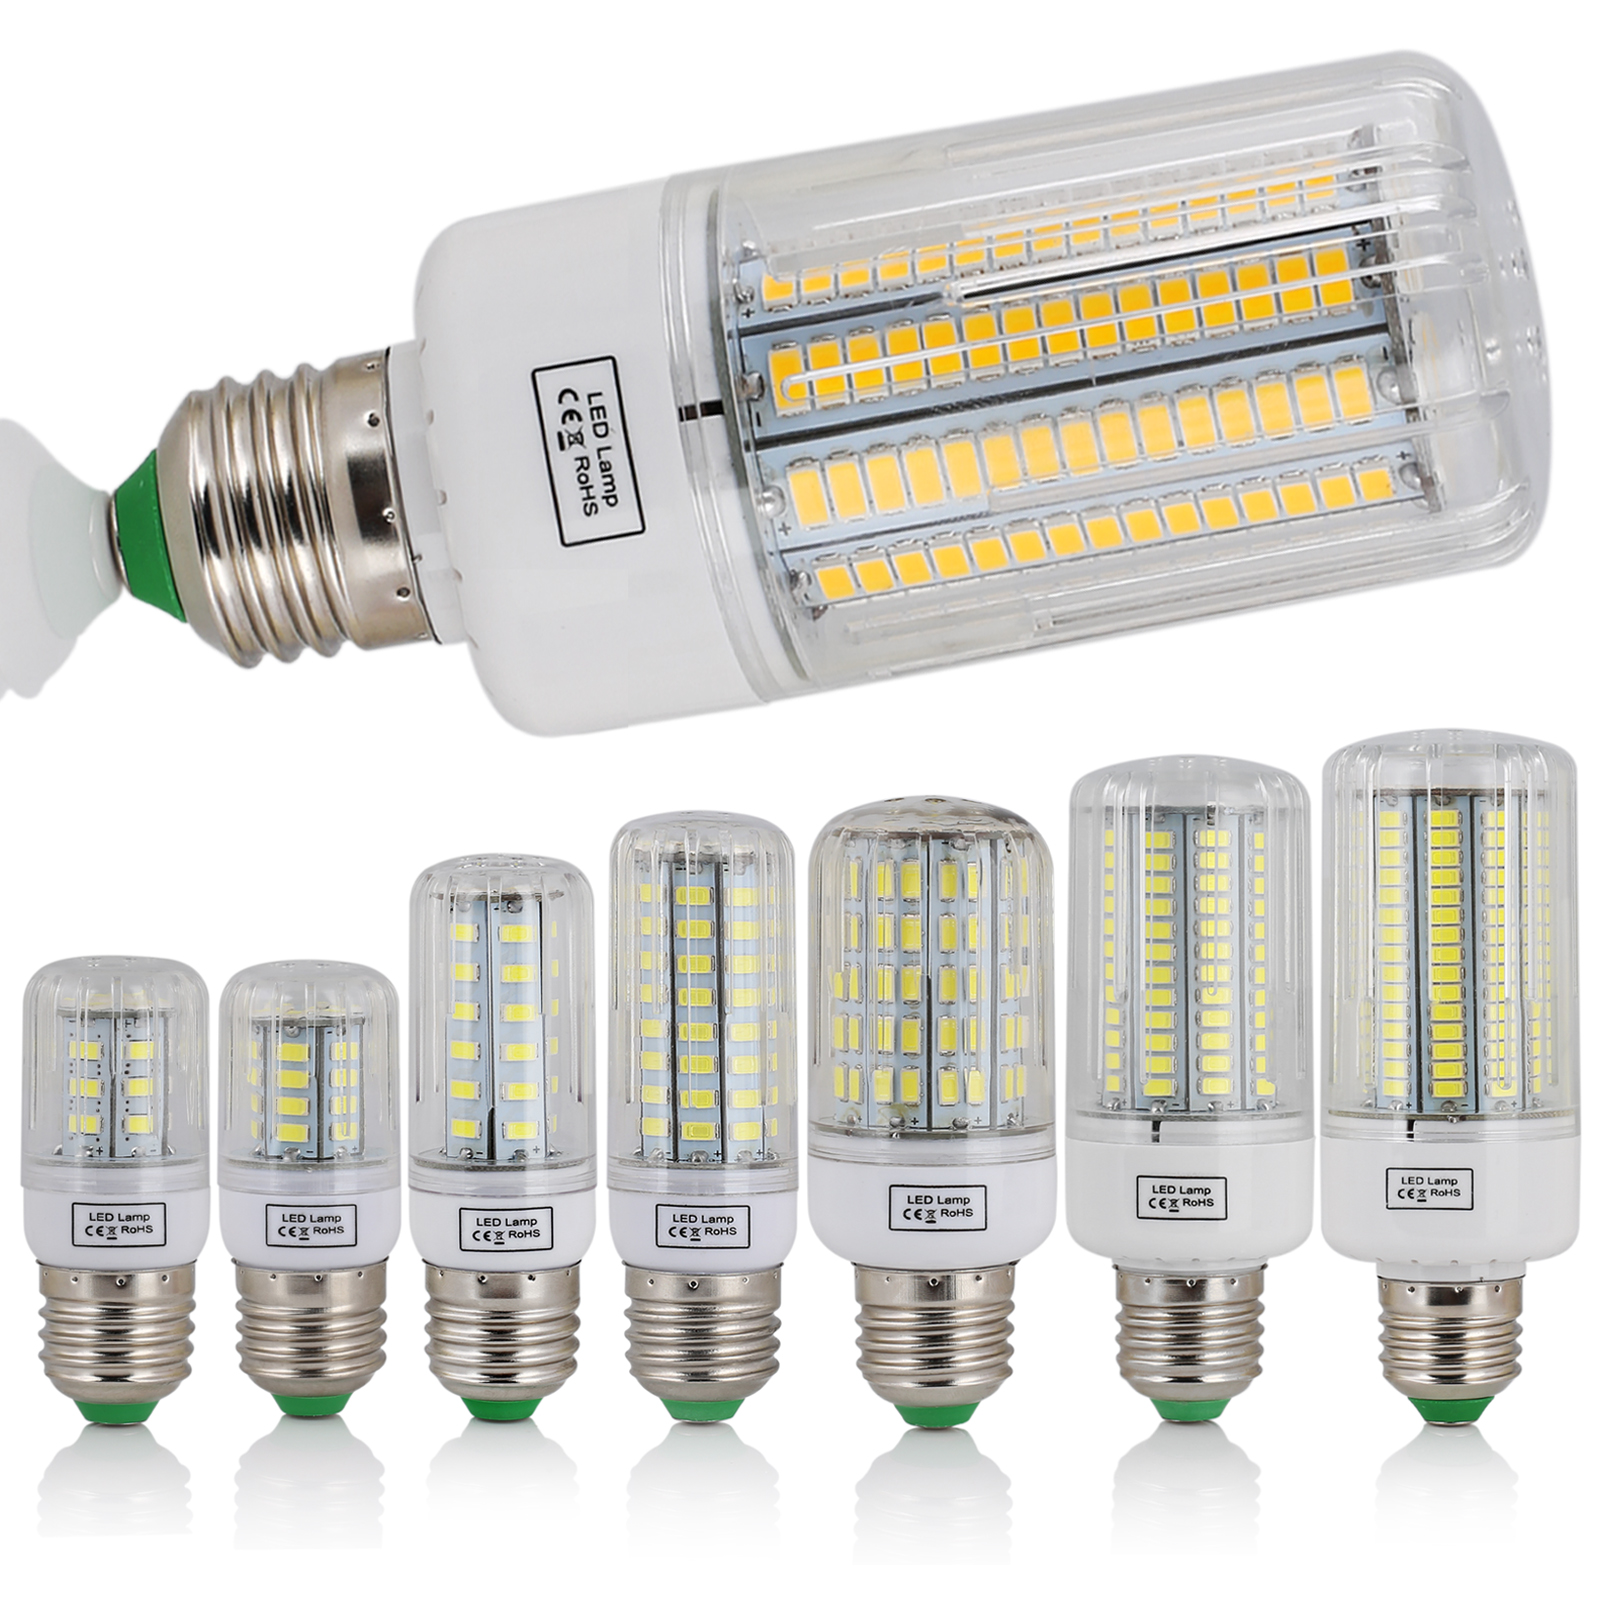 LED Corn Light Bulbs E27 Screw Base SMD 5730 7W 12W - 30W 45W Ultra Bright Home Chandelier Table Lamp 30 42 - 136 165LEDs 220V